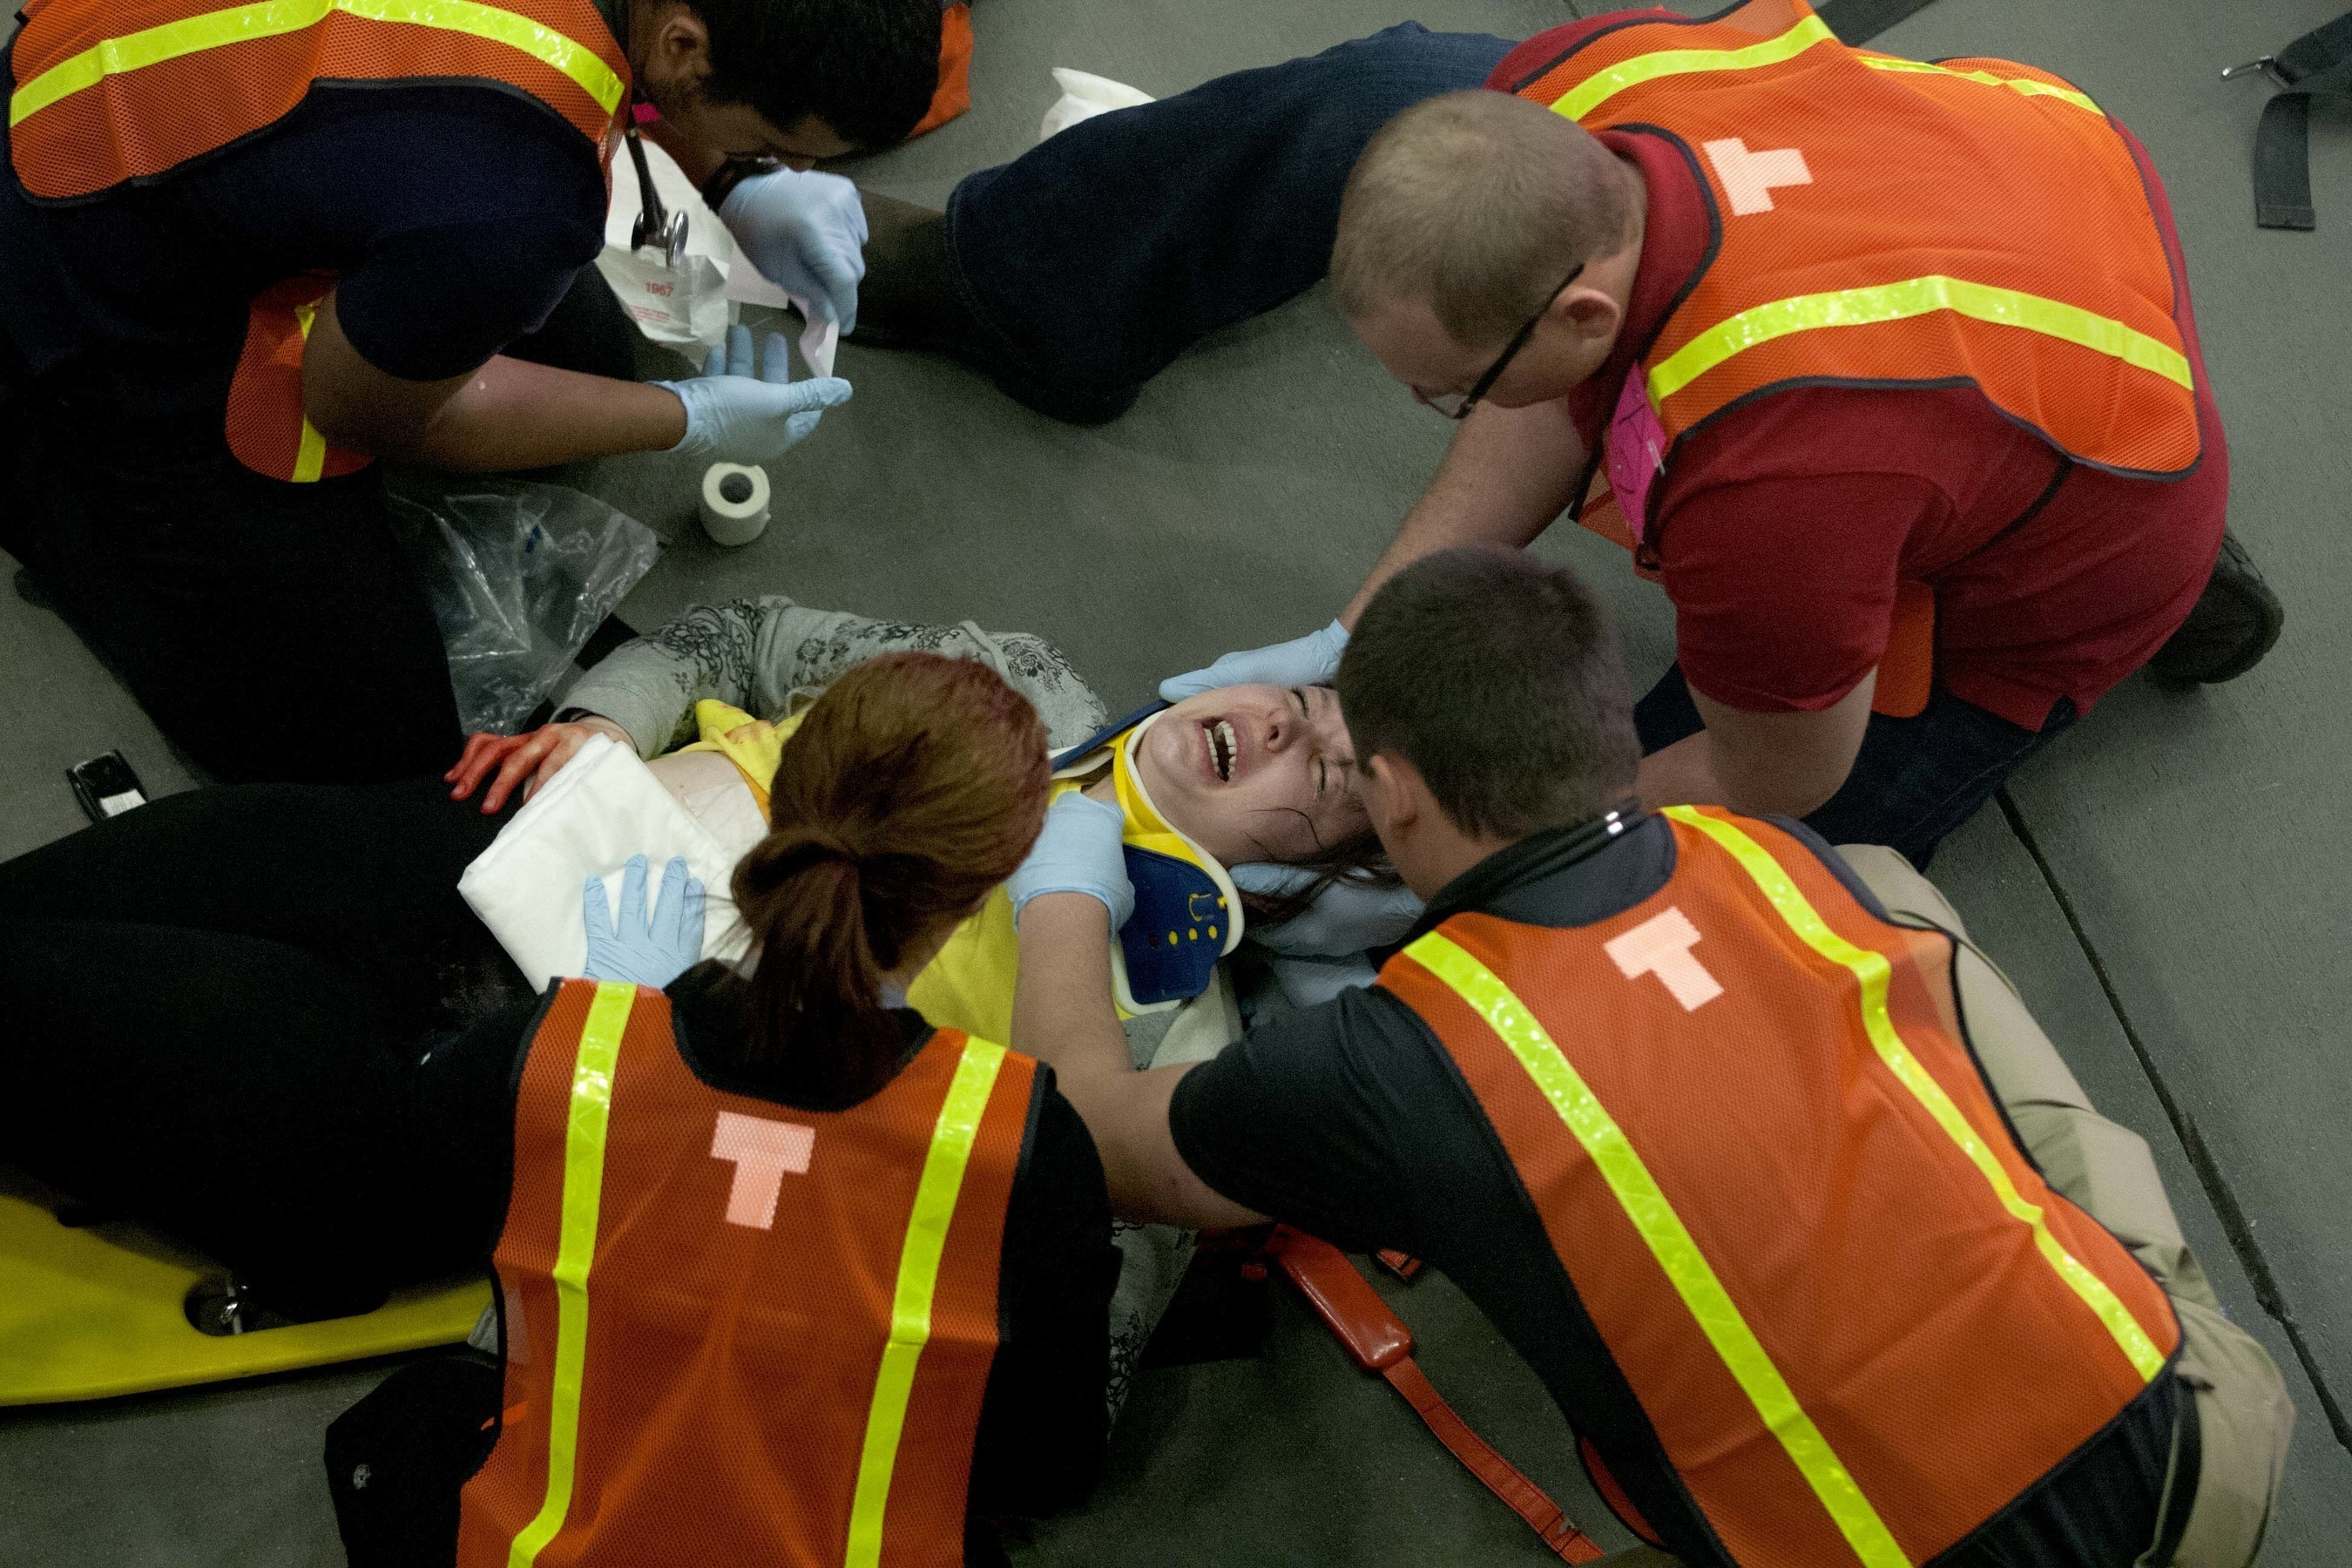 College of DuPage recently received an Illinois Council of Community College Administrators Innovation Award (ICCCA) for a first responder and health care team collaboration exercise held at the Glen Ellyn campus this spring.